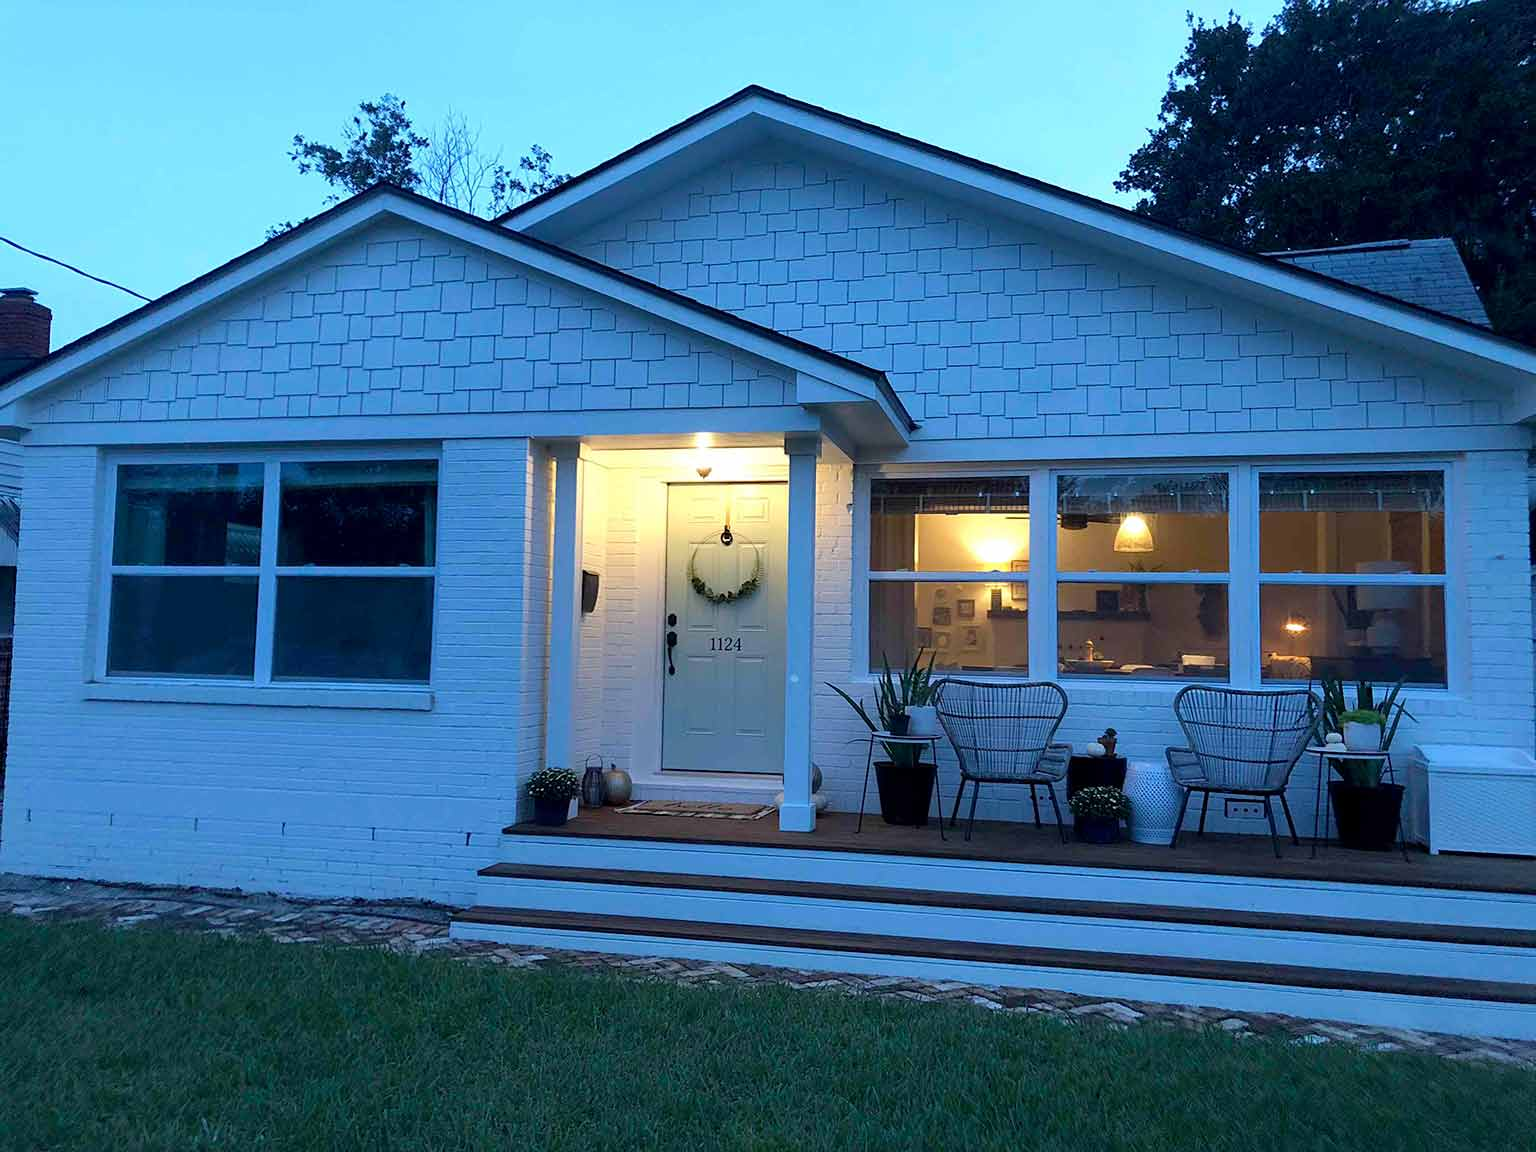 Front porch fall makeover reveal night view - That Homebird Life Blog